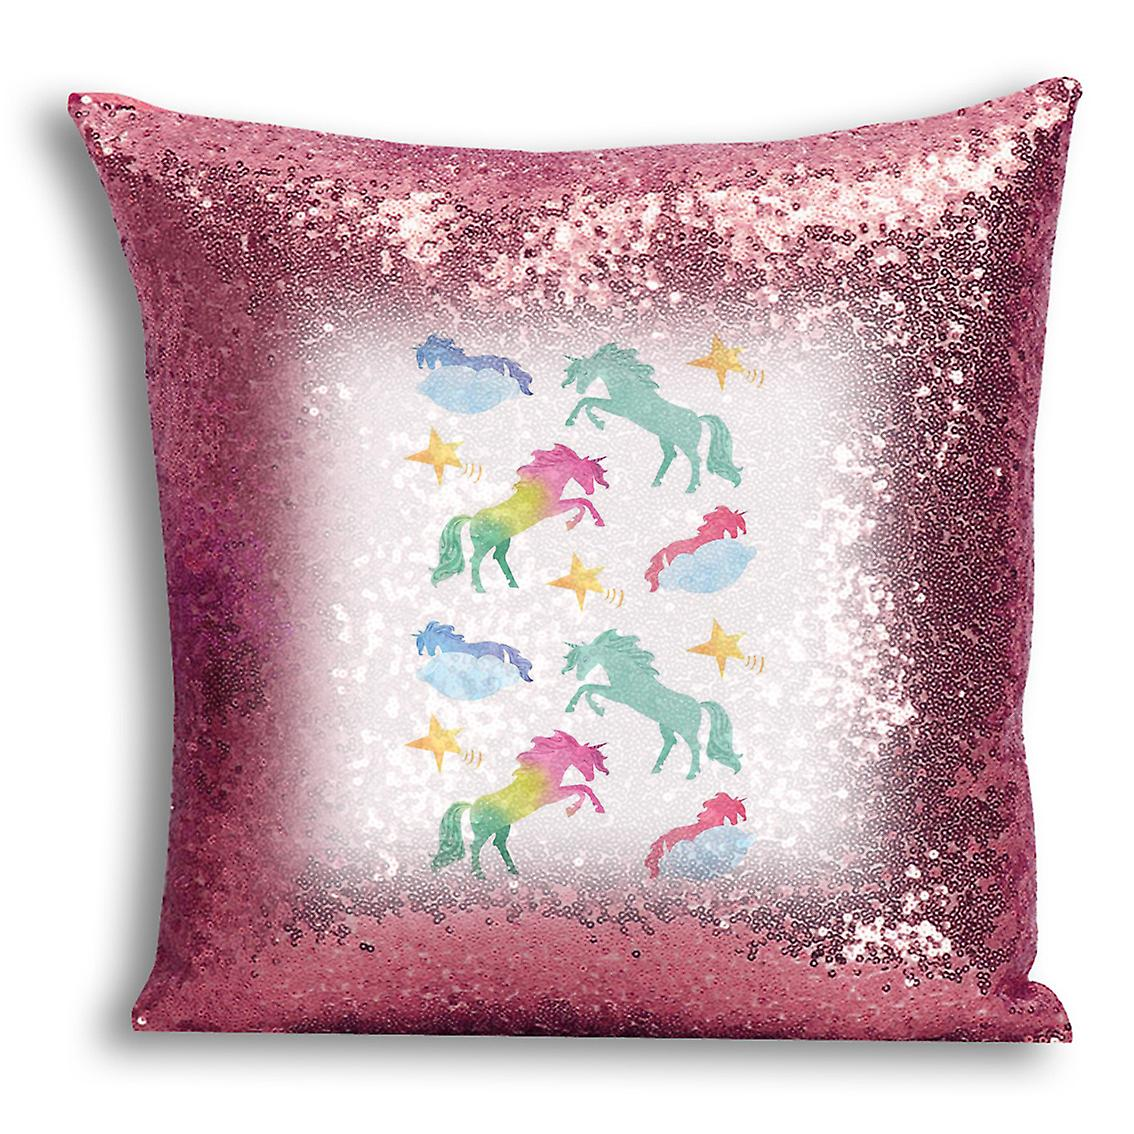 For Printed Design Decor Rose Gold tronixsUnicorn Home Sequin With 7 CushionPillow I Cover Inserted 08PnwOk